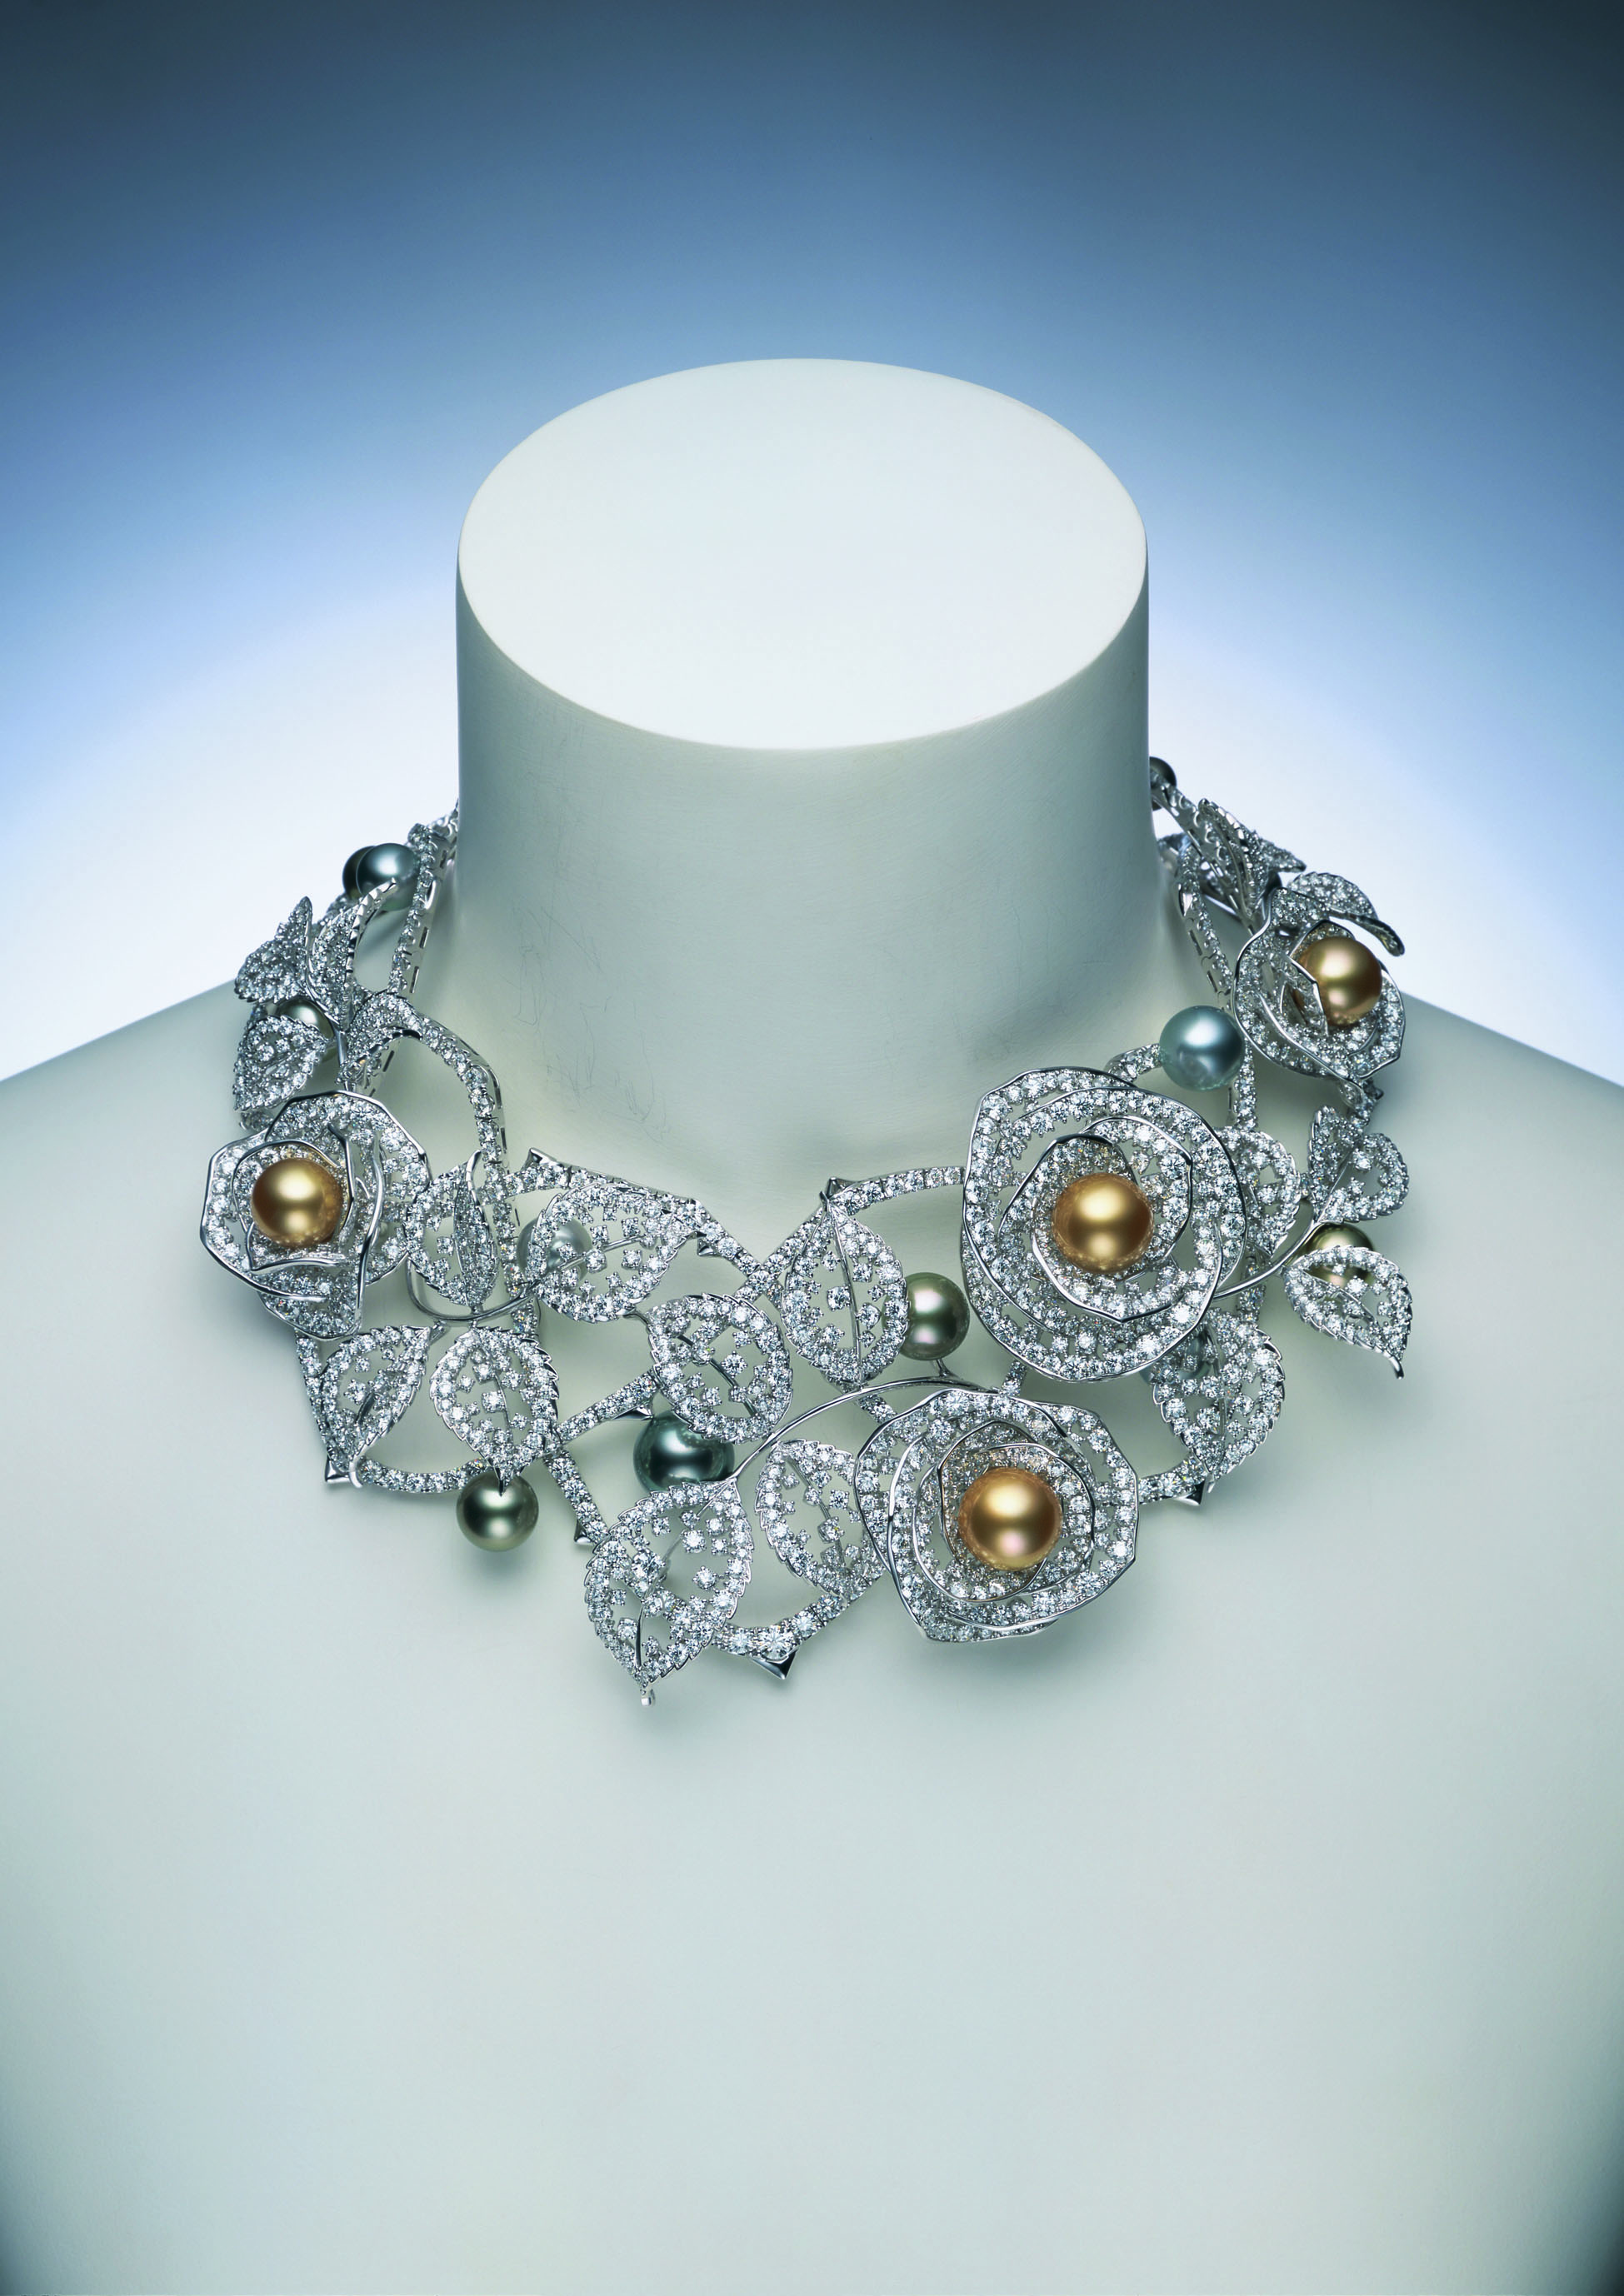 Stunning neck piece from Mikimoto Pearl with small encrusted diamonds and colored pearls.